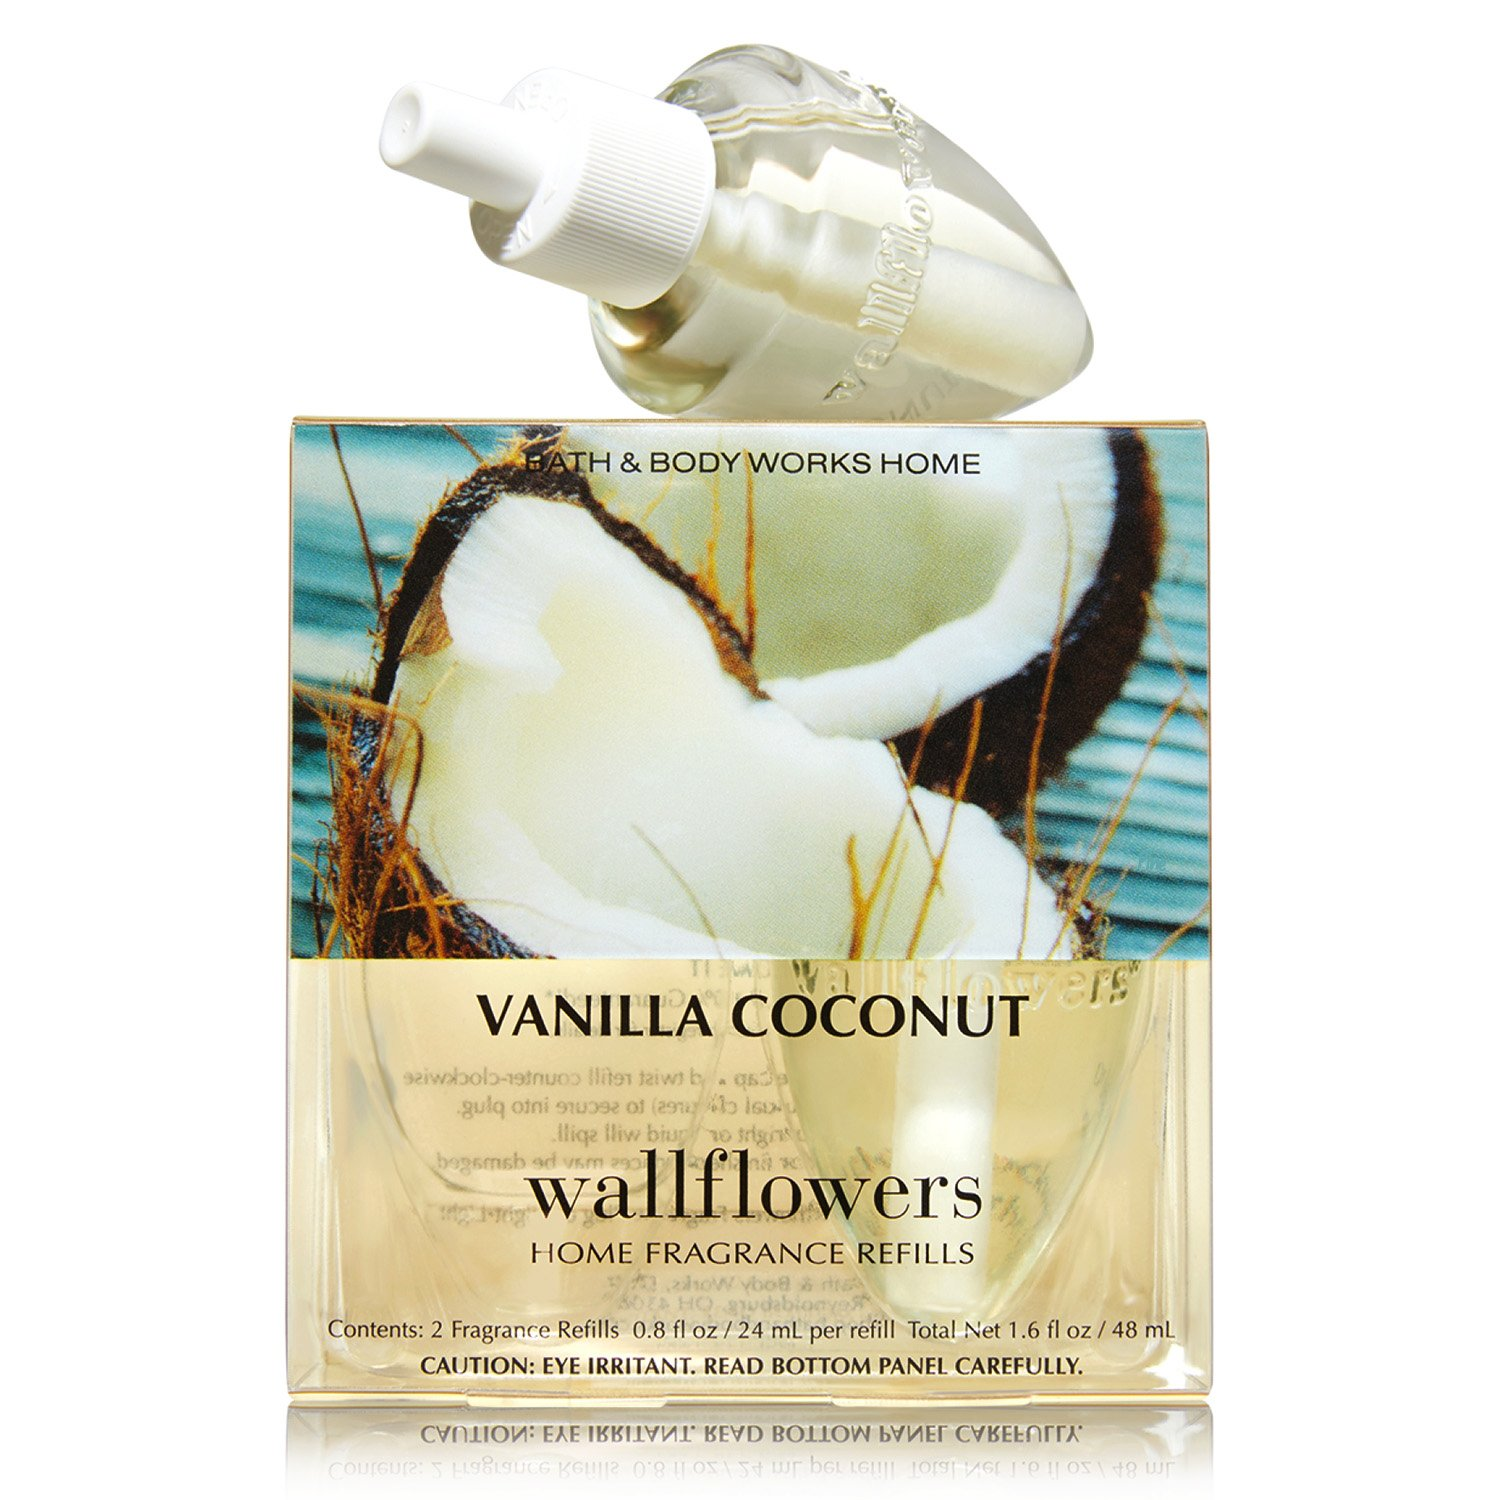 Bath & Body Works Vanilla Coconut Wallflowers Home Fragrance Refills, 2-Pack (1.6 fl oz total)